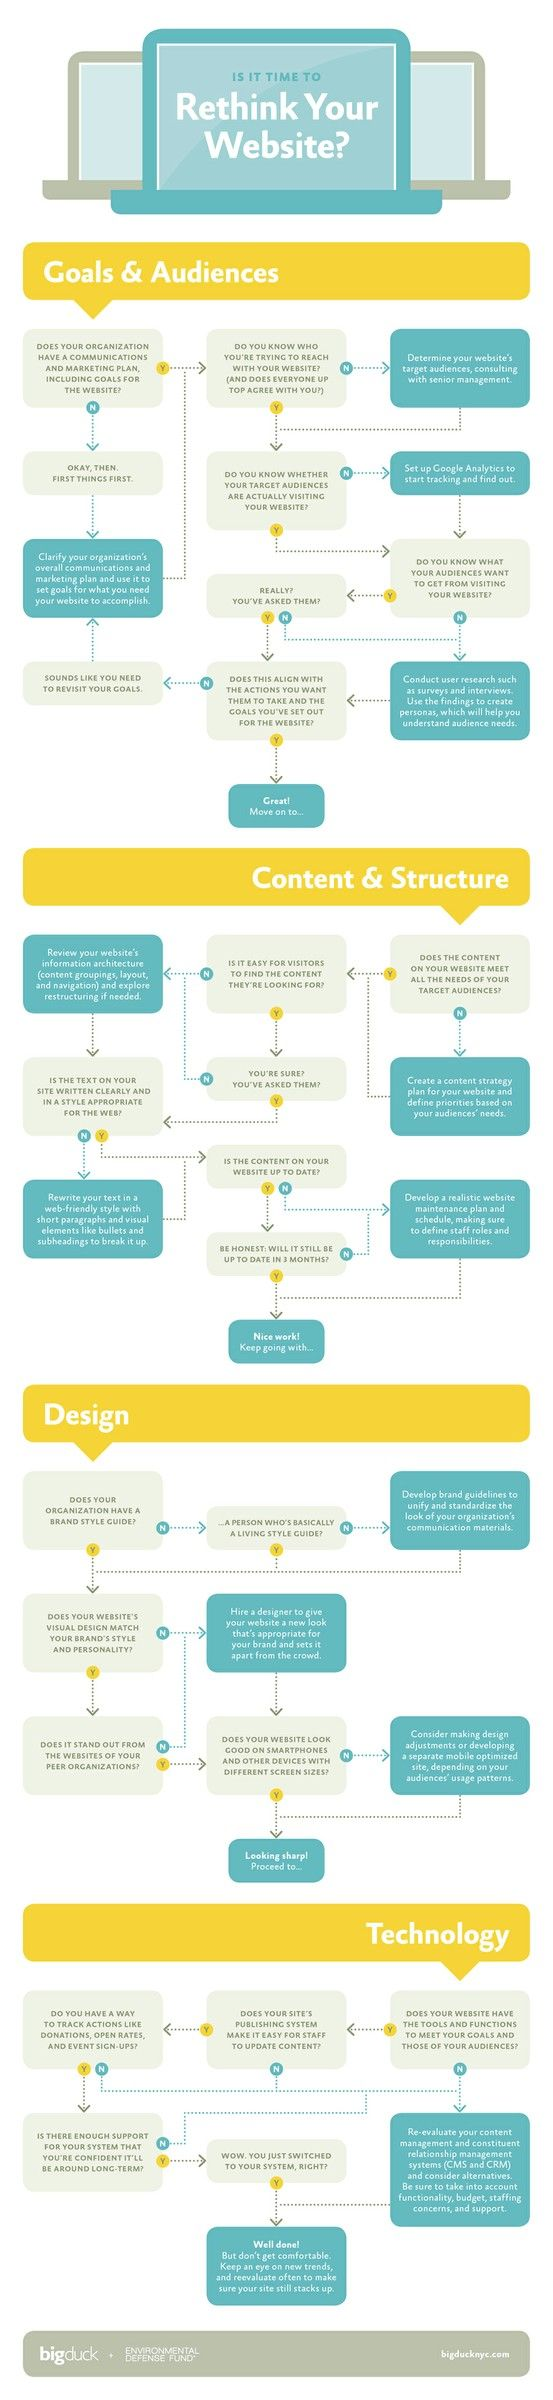 Thinking of changing your website design? Here's what to take into account